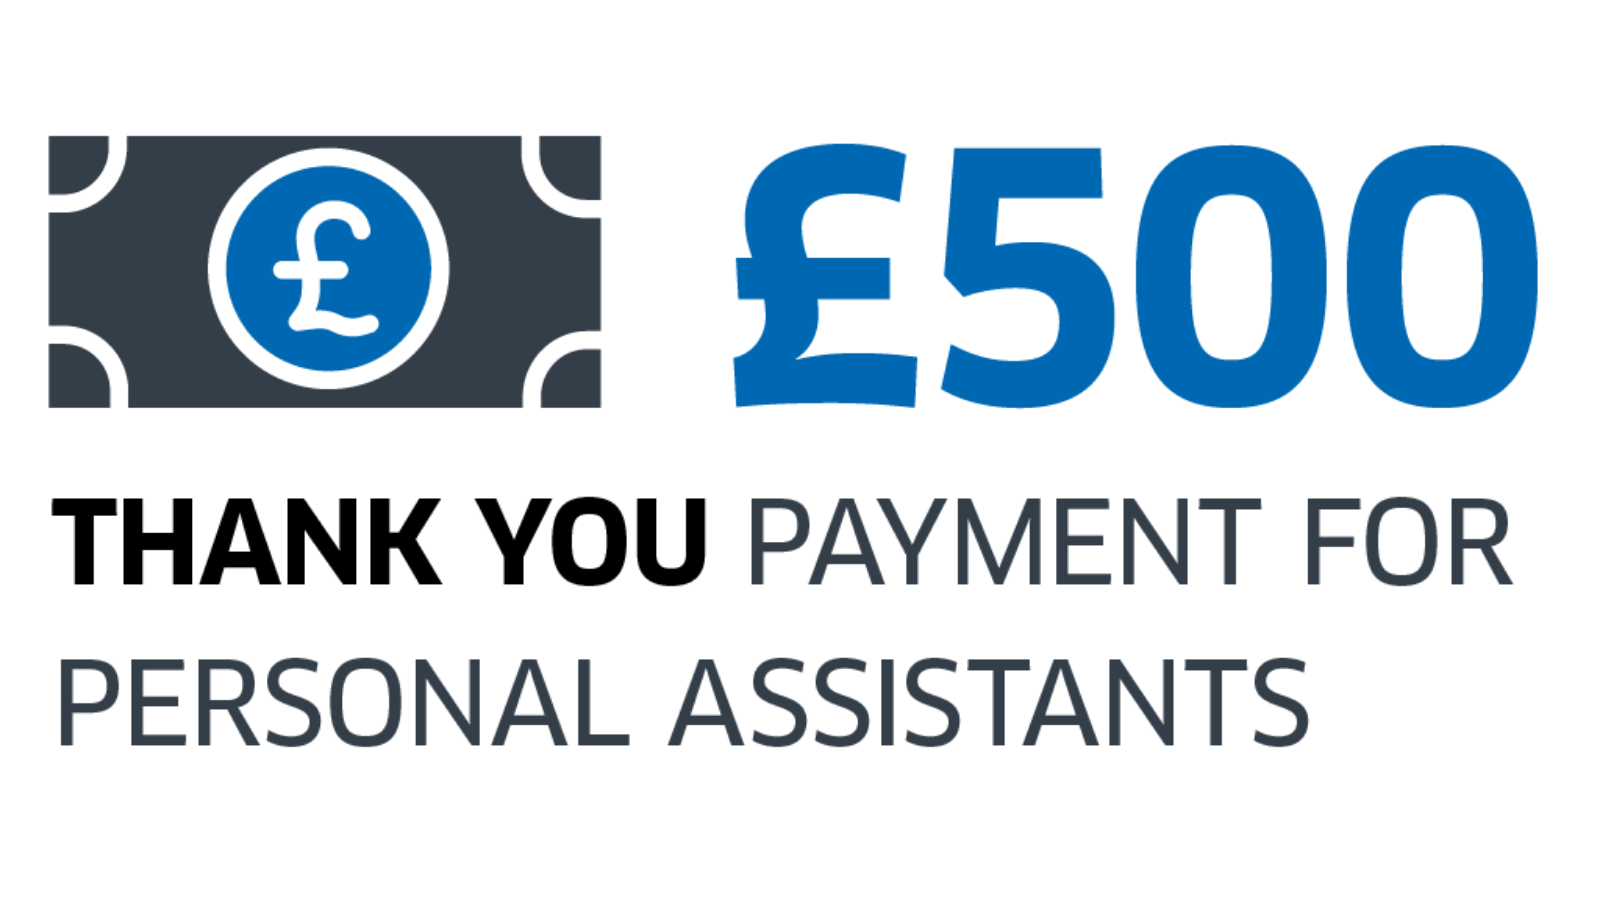 A dedicated online and paper based application form, administered by Scotland Excel on behalf of the Scottish Government, launched on Wed 30 June 2021 to pay Personal Assistants who are eligible to receive their £500 payment for NHS and Social Care staff.